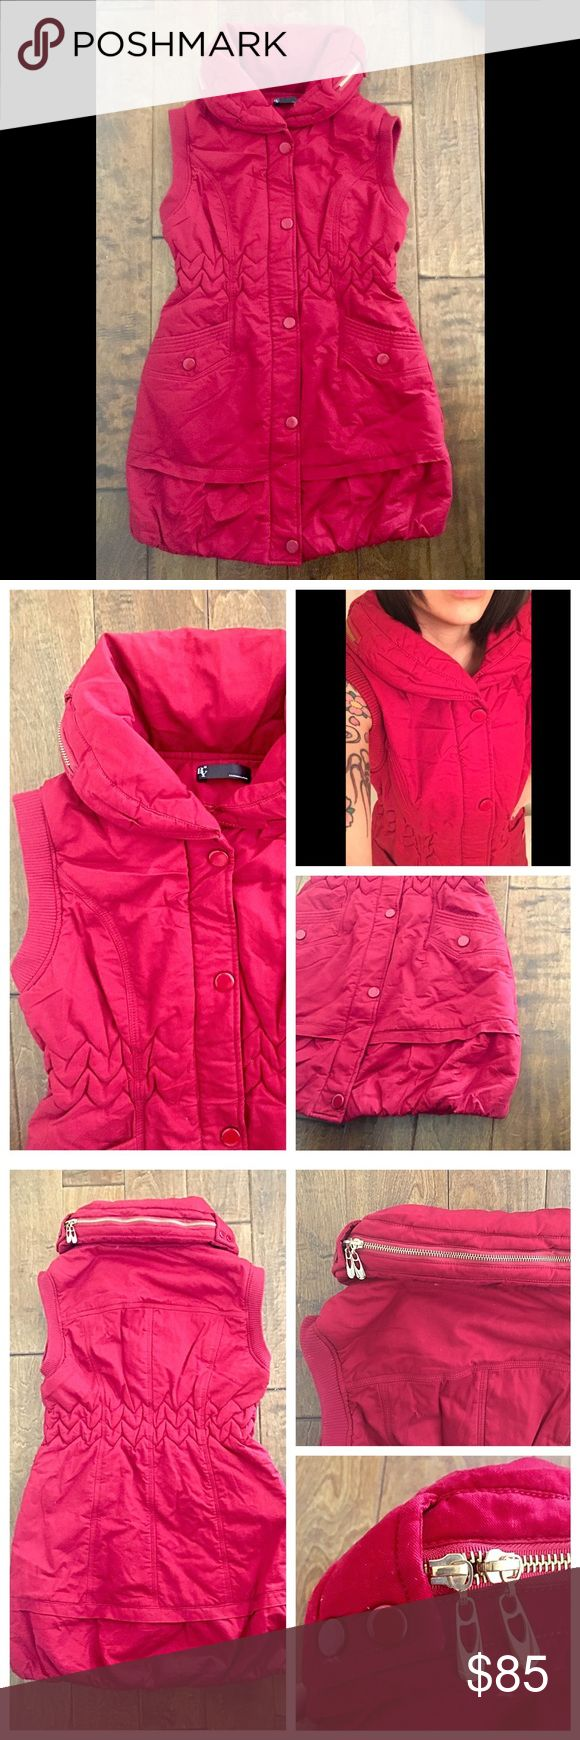 Red Jean Puffer Vest Jacket Long Jean Puffer Vest Jacket • Super Cute, thick, warm and unique design! • Red Jean exterior • Smooth interior • Full length zipper • Zipper cover with snap buttons • Scrunched waist • Flared / bubble bottom • 2 side pockets • Puffy collar with decorative button and zipper • Size Large (39 inch bust; 33 inches in length) • Preloved; excellent condition, no flaws Jackets & Coats Puffers